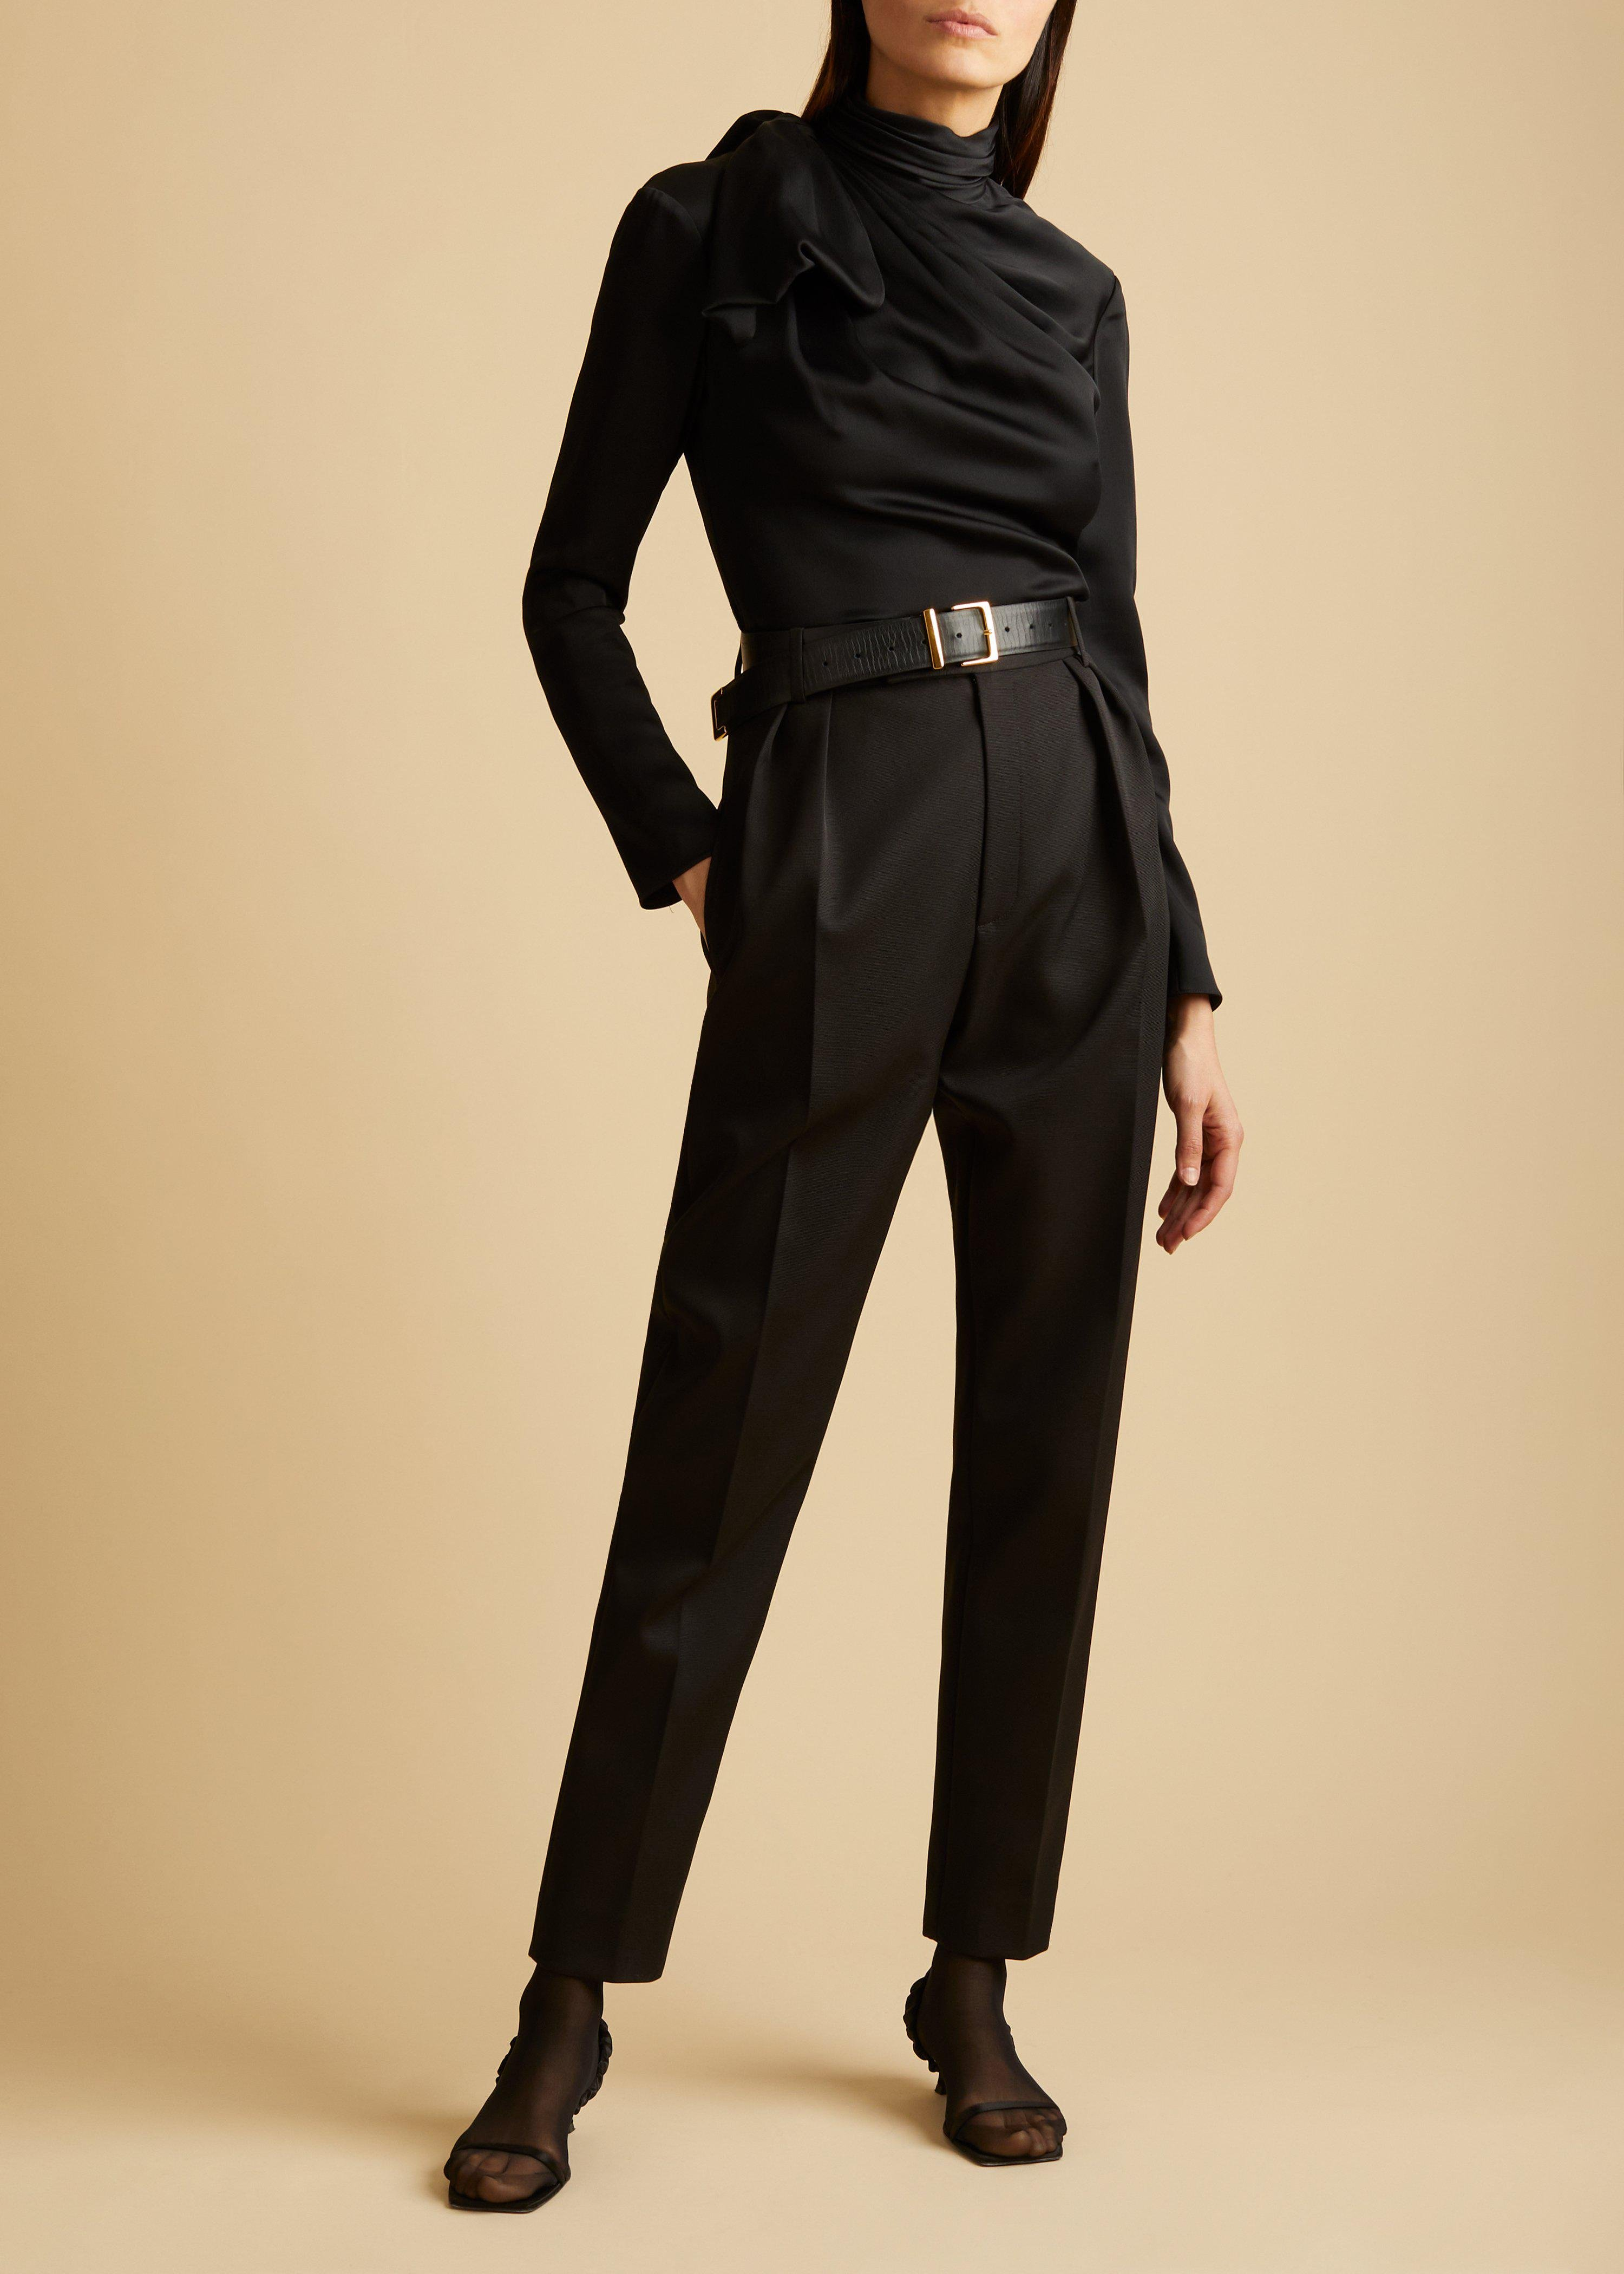 The Magdeline Pant in Black Cotton